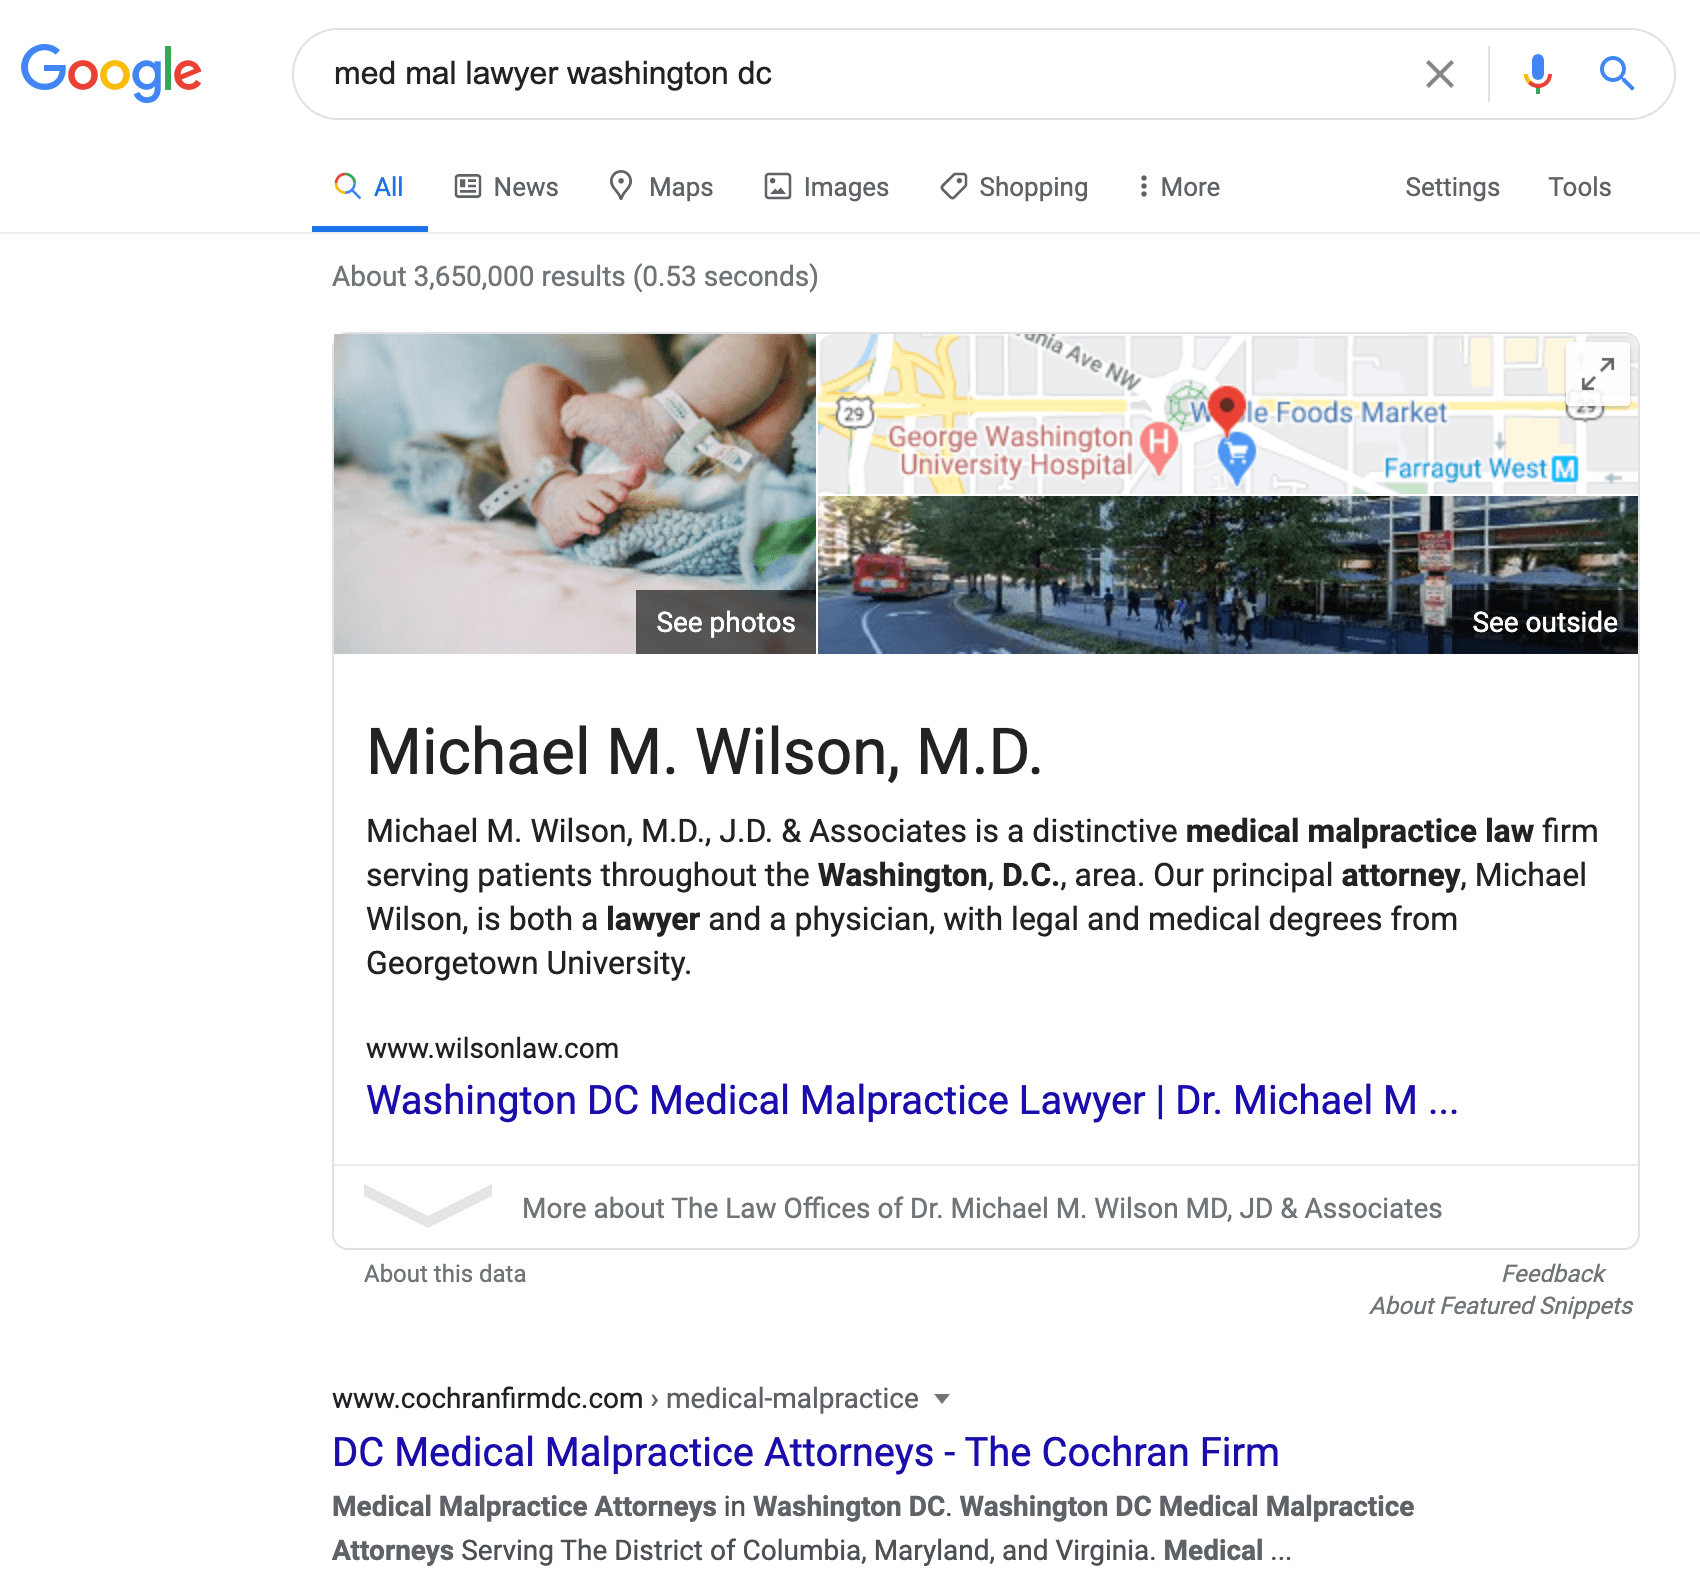 map pack featured snippet